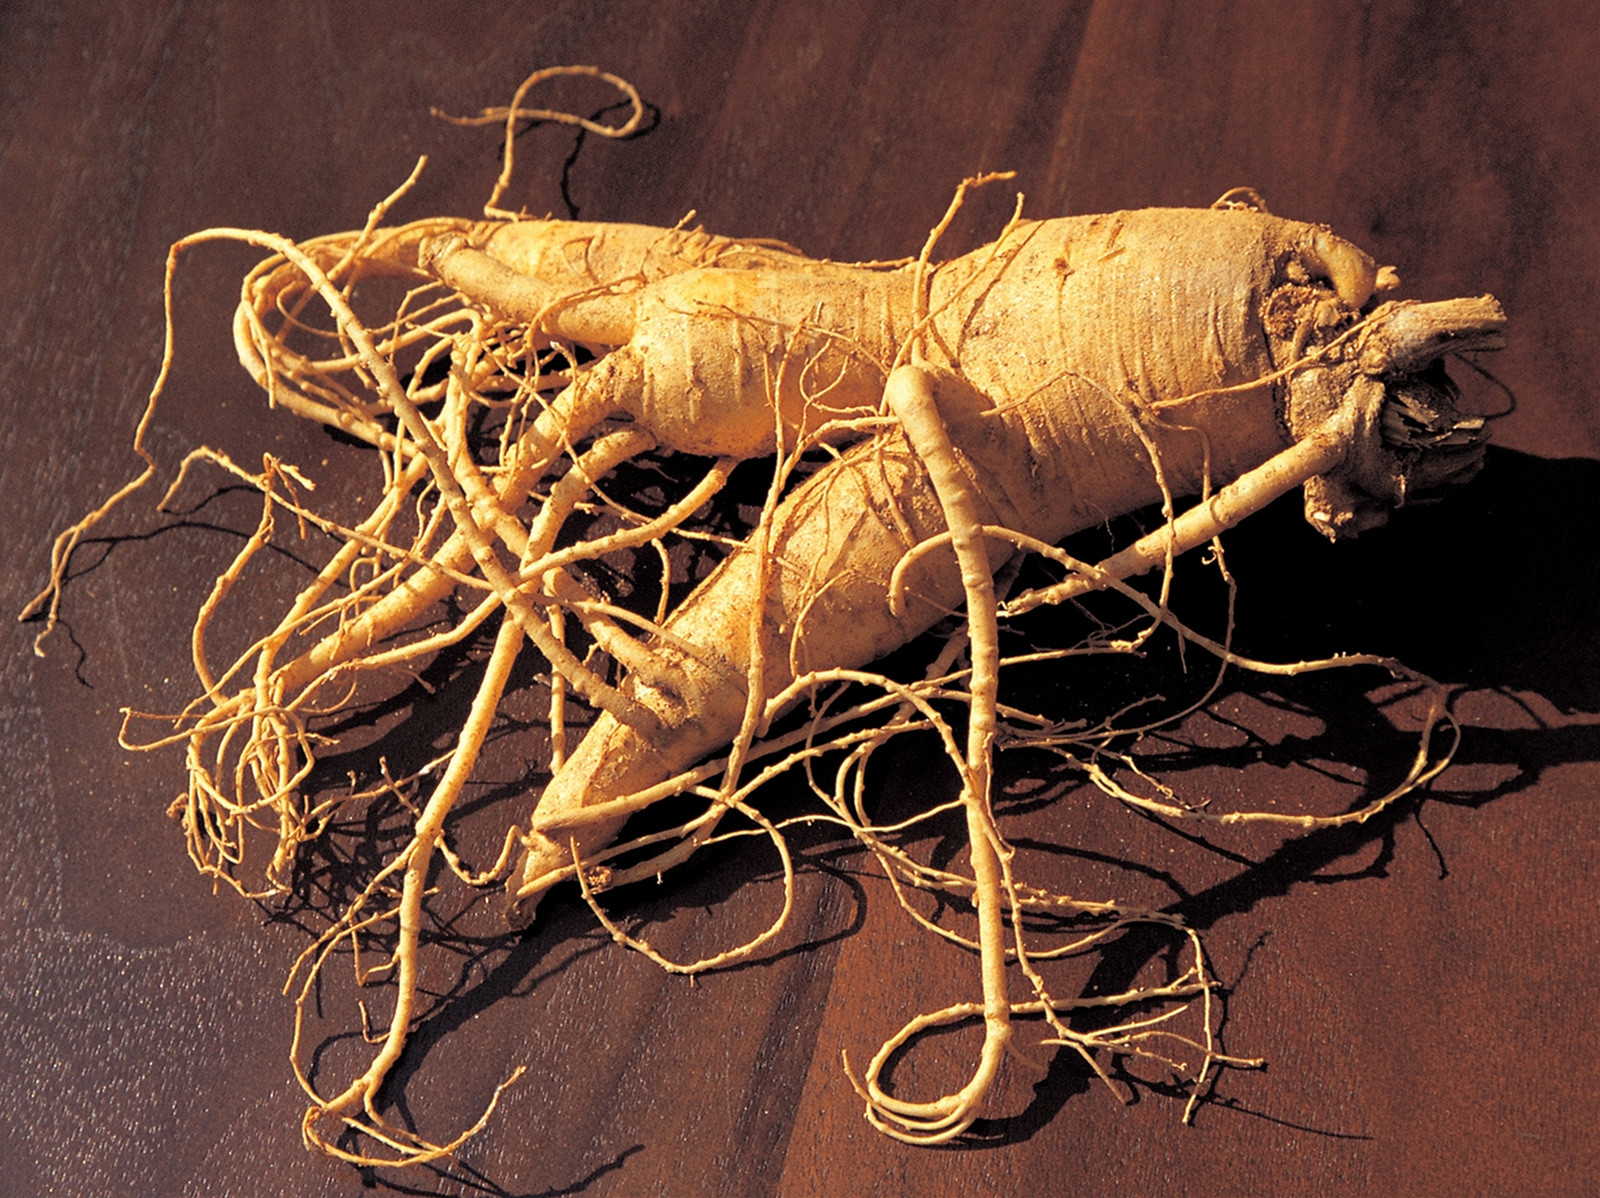 A fleshy ginseng root placed on a dark wooden surface.